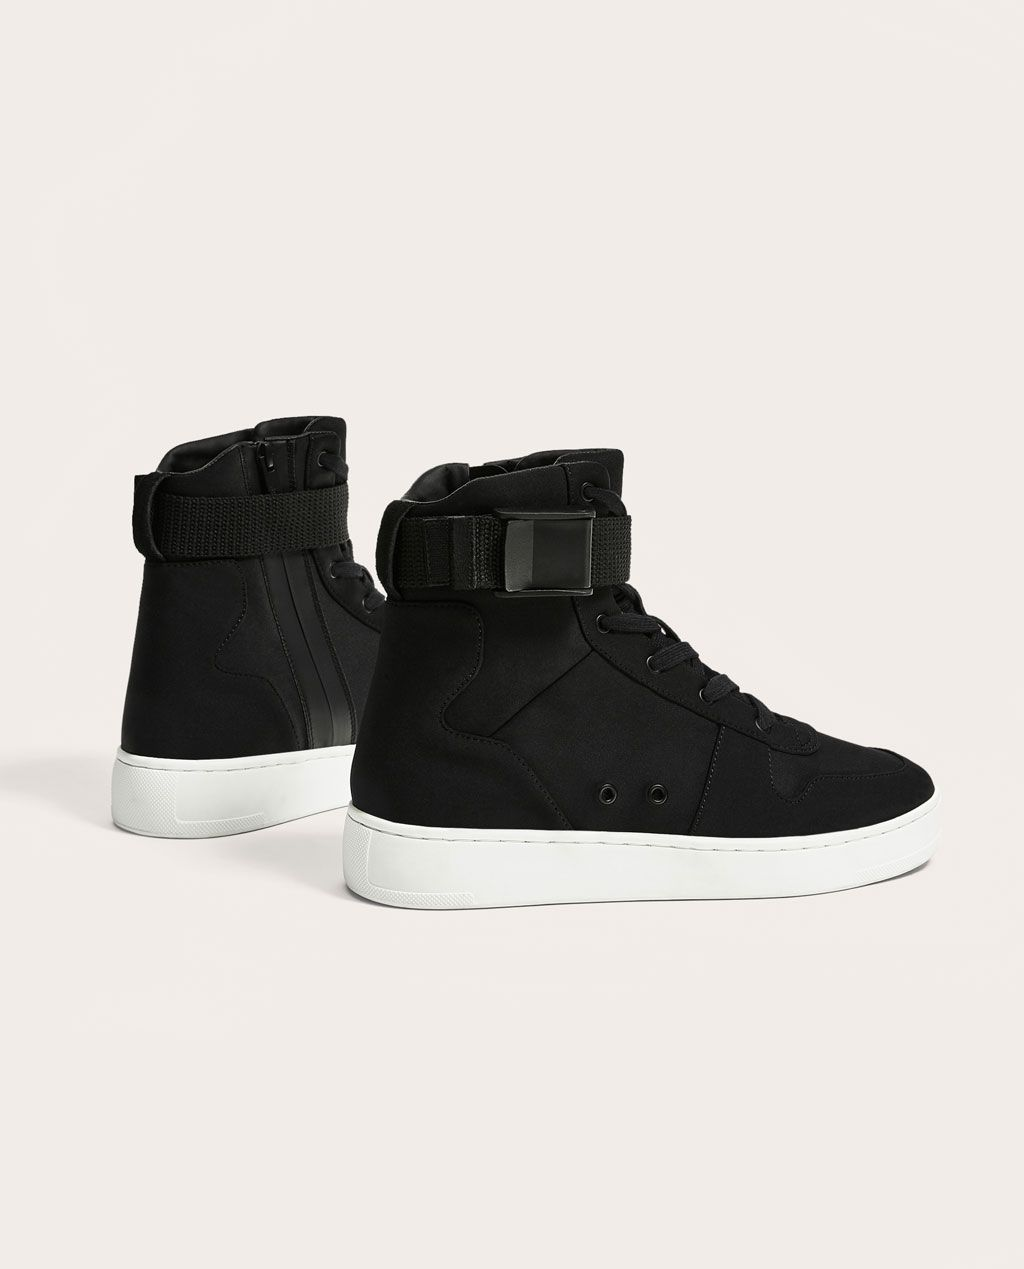 Image 1 de BLACK HIGH-TOP SNEAKERS de Zara | Chaussure pour ...